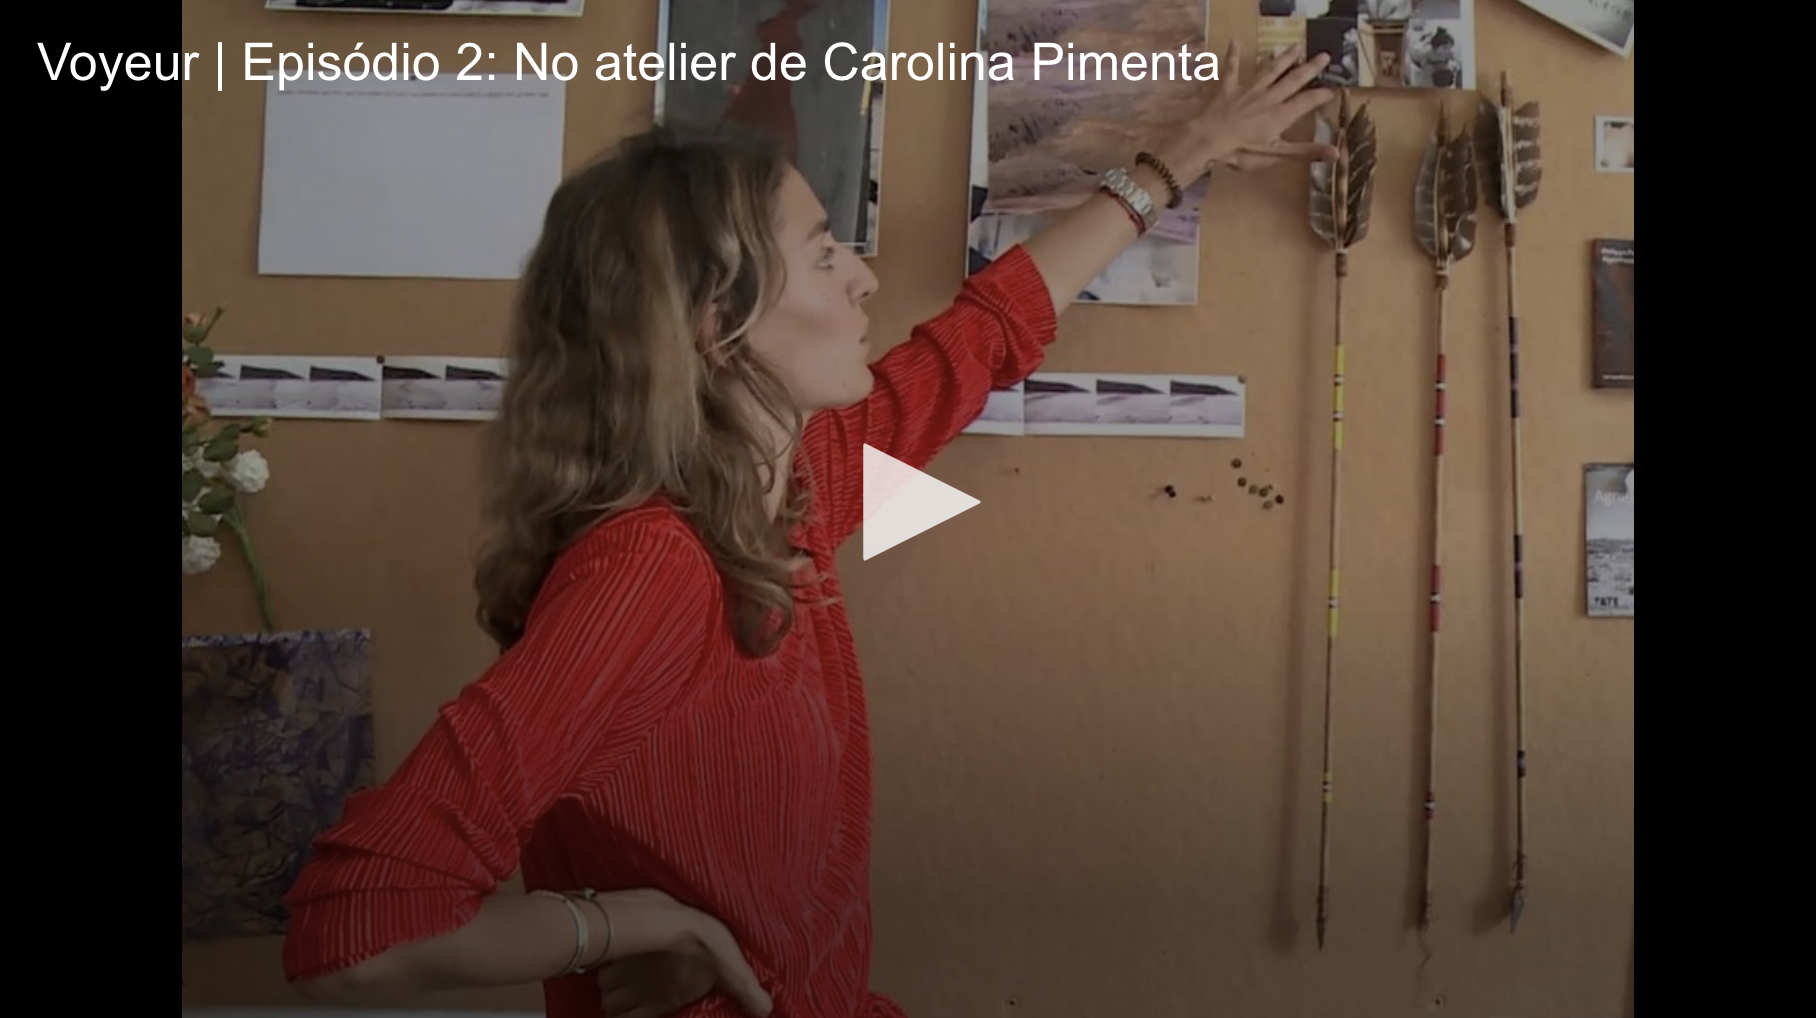 Voyeur | Episódio 2. No atelier de Carolina Pimenta,   Máxima , September 2017  At Carolina Pimenta's studio for the second episode of the Voyeur series. Carolina opens the doors of her studio in Chiado and lets us peek at her aesthetic universe, world influences and out of the box ideas.